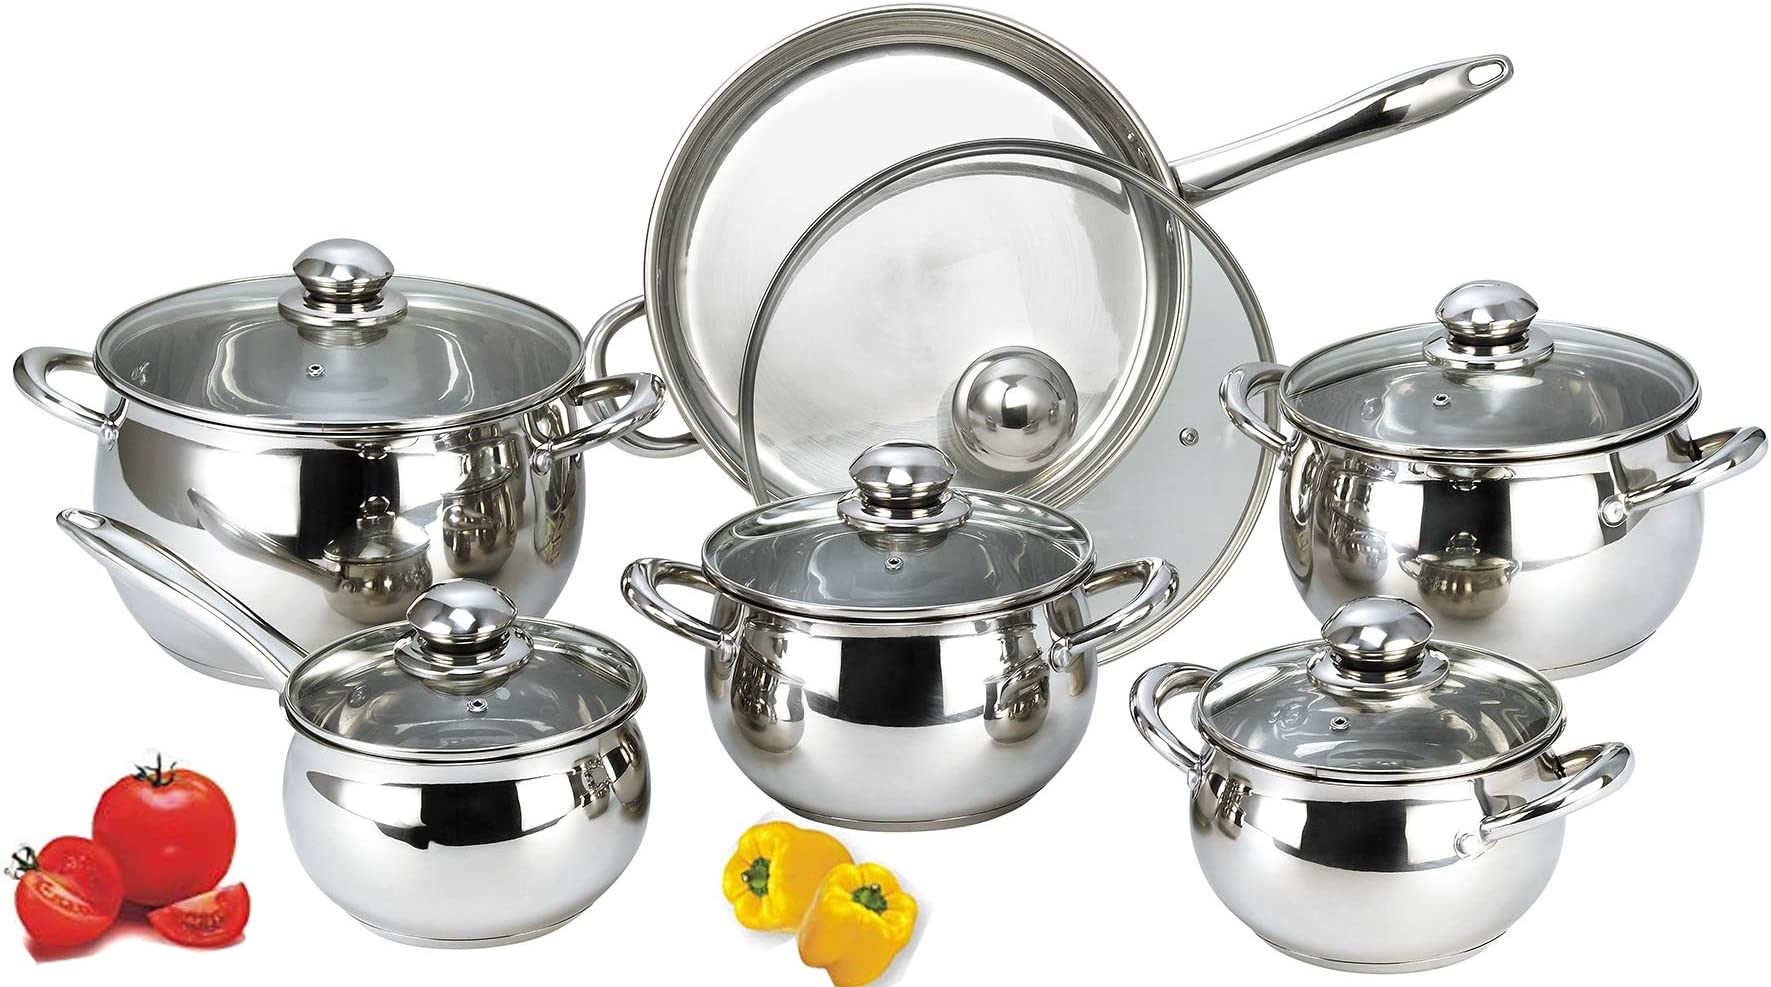 Hth Stainless Steel Pots And Pans Set 12 Piece Cookware Kitchen Set Cooking Starter Kit With A Saucepans With Lids And 4 Different Sizes Casserole Pot With Lid Price In Uae